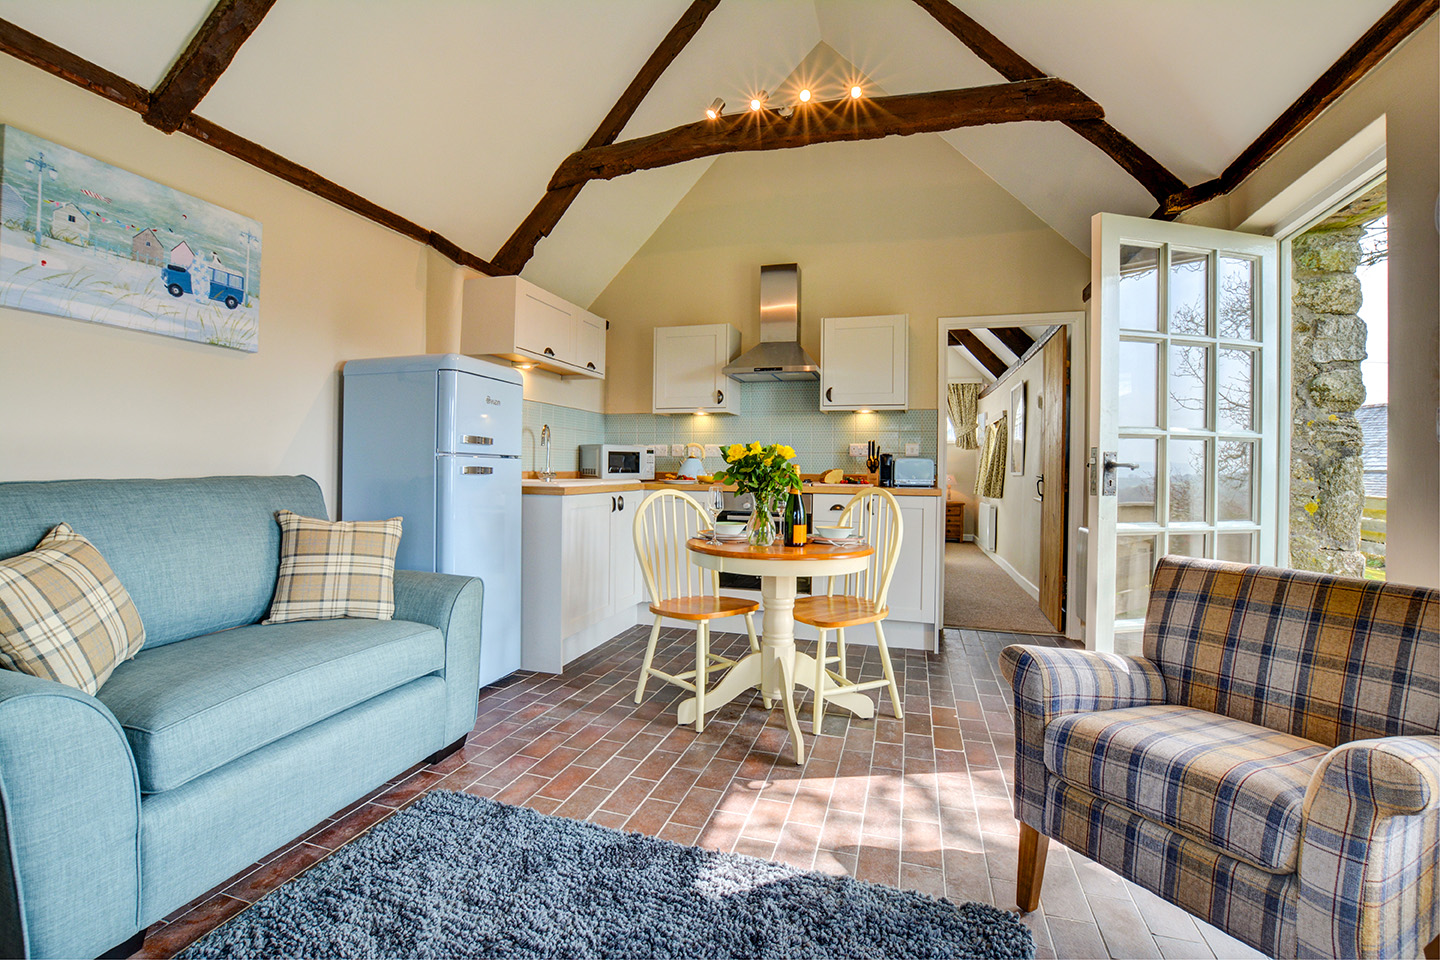 The lounge kitchen diner at Jingles luxury self catering holiday cottage at Penrose Burden in North Cornwall near Bodmin Moor01.jpg